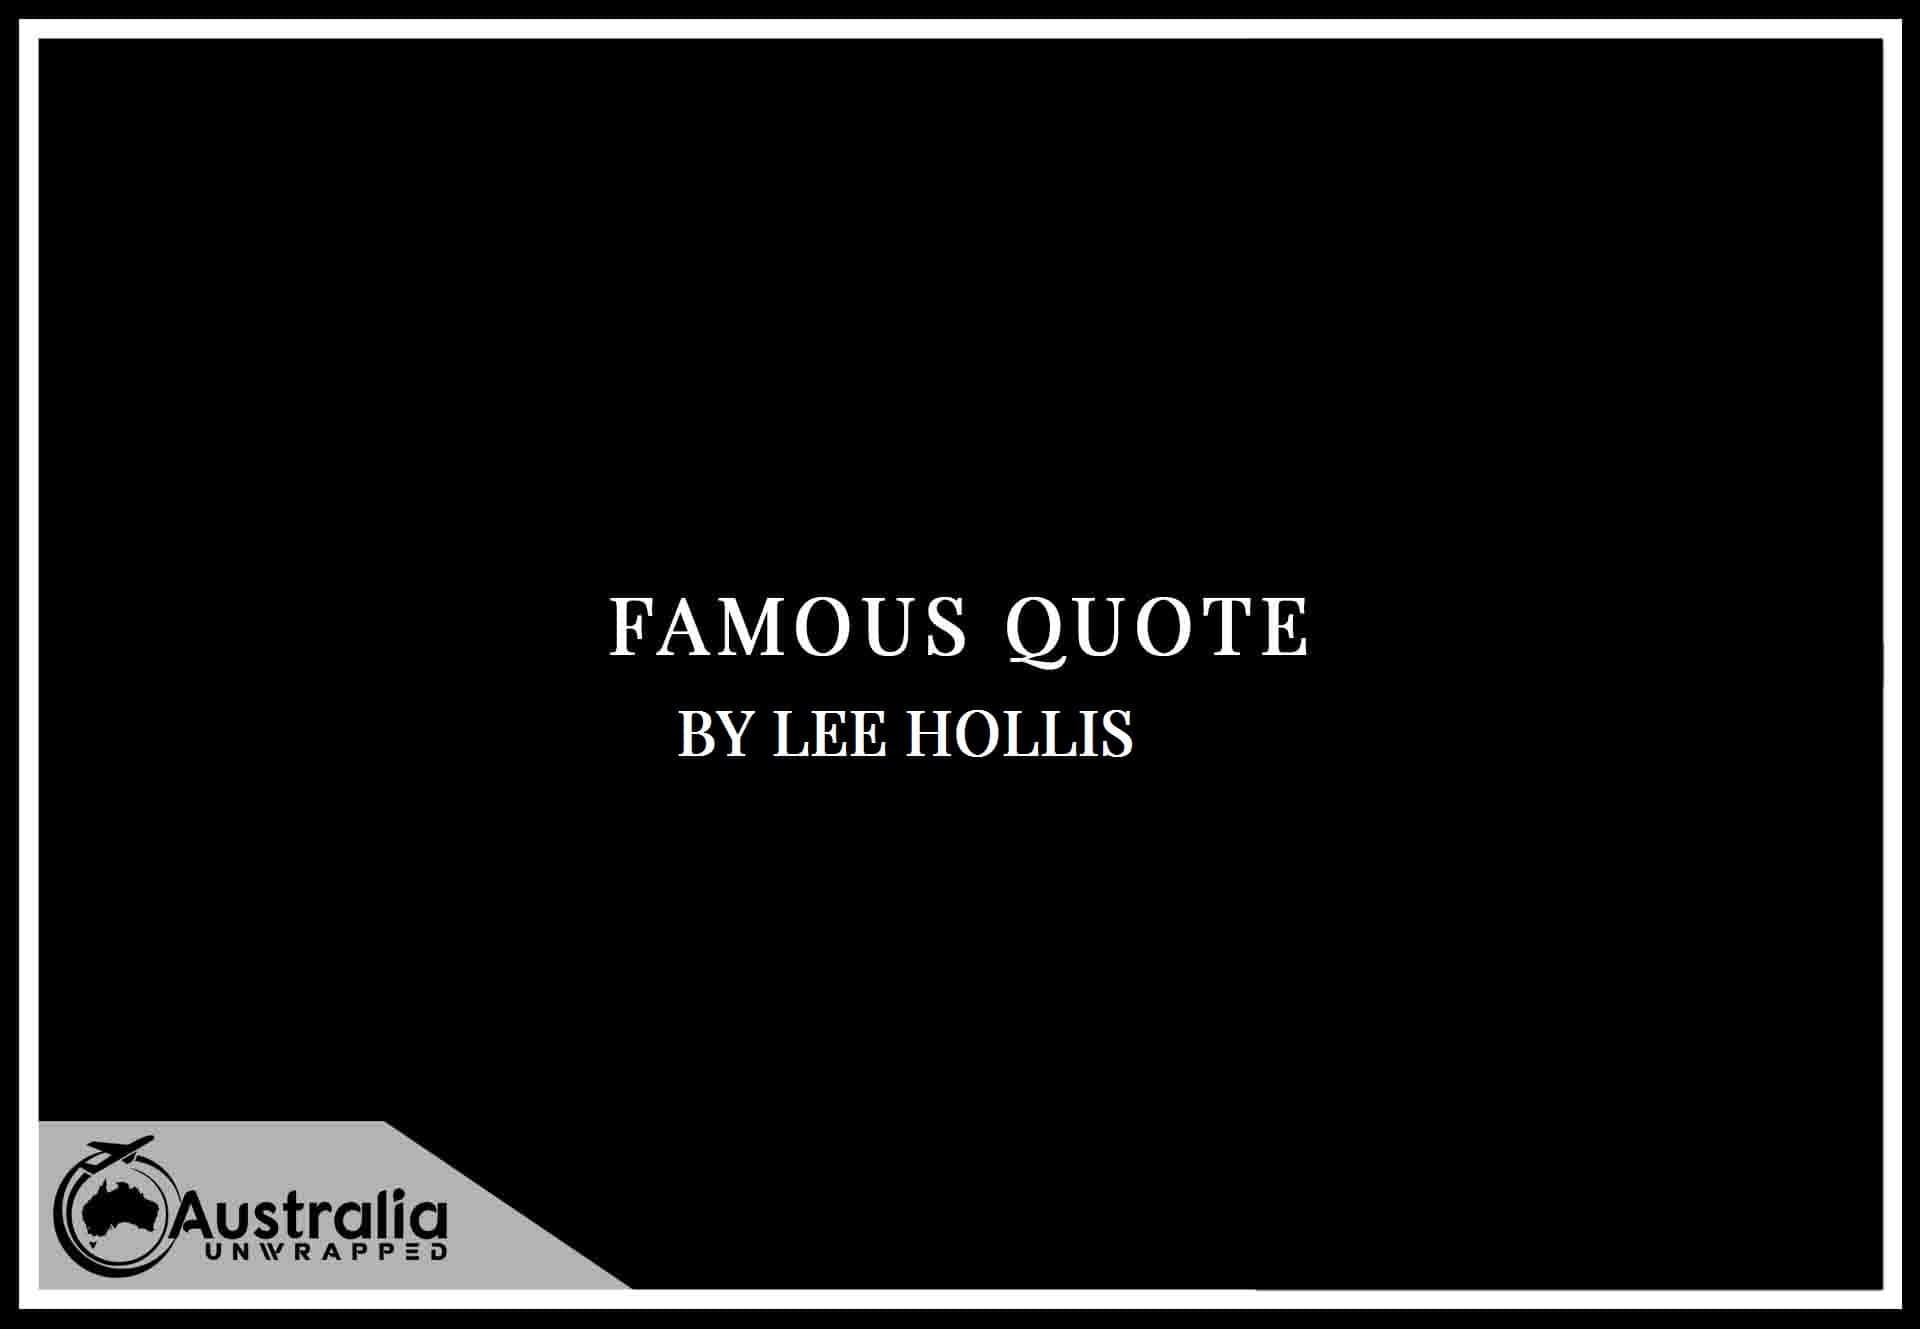 Lee Hollis's Top 1 Popular and Famous Quotes